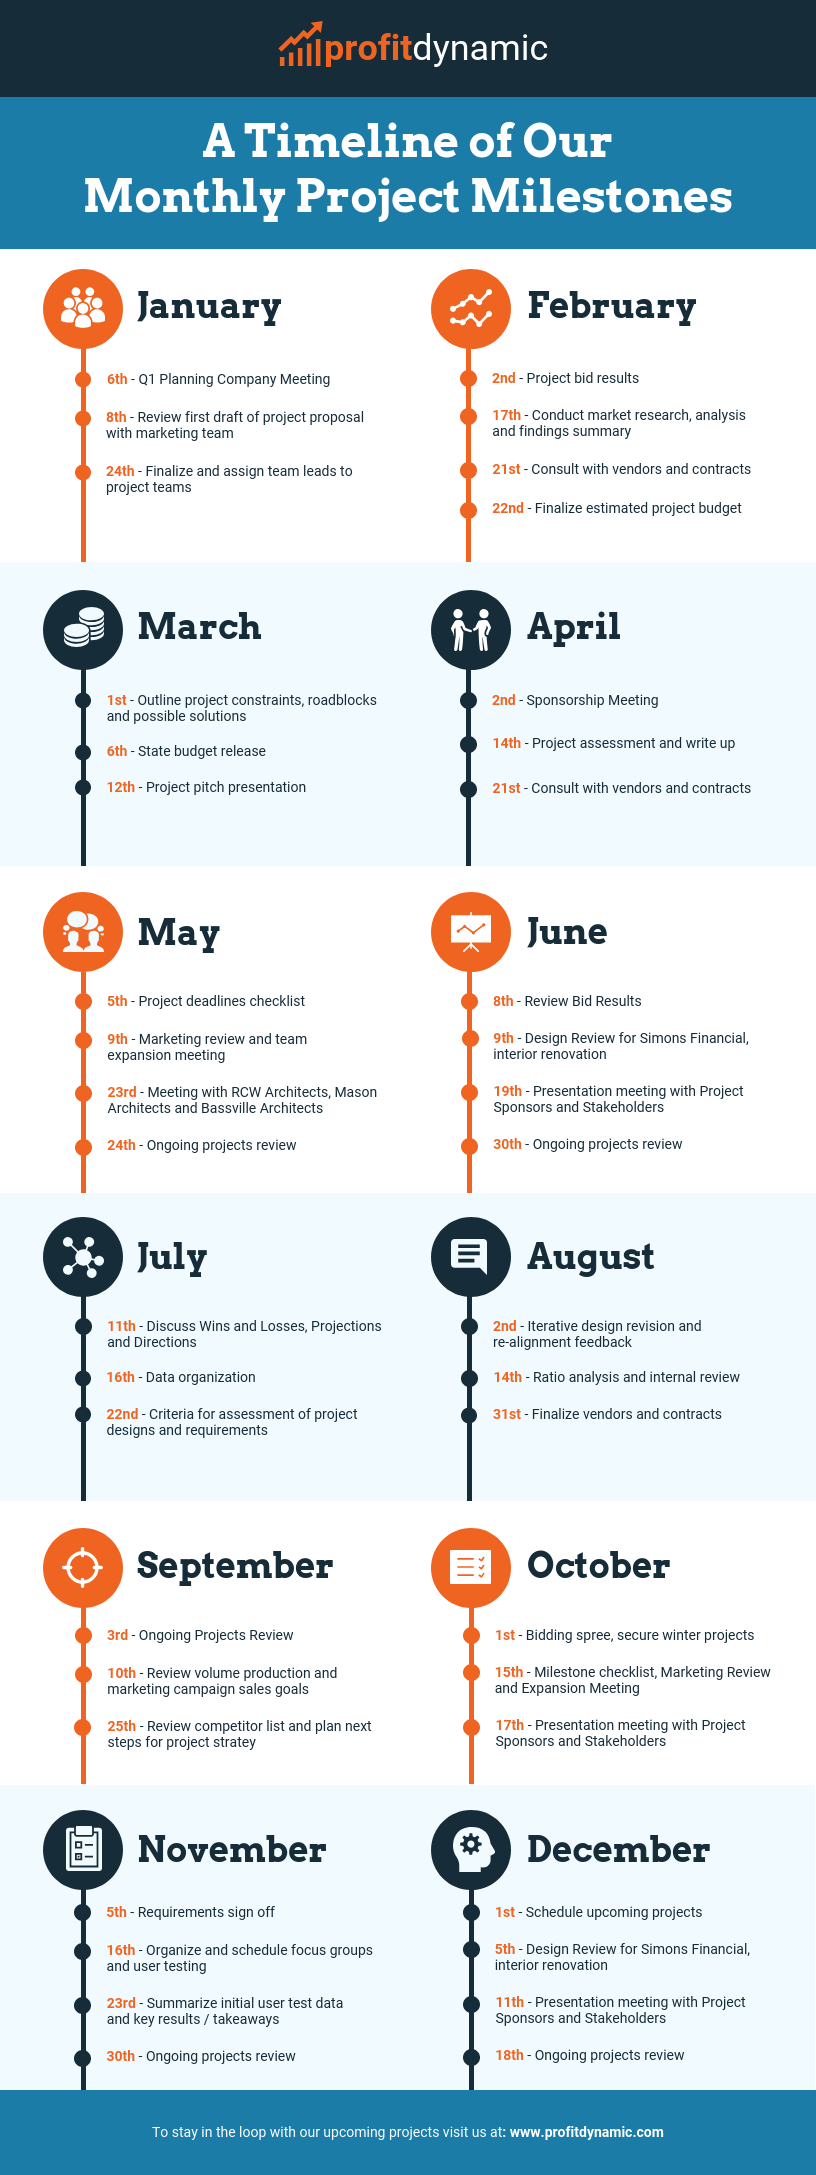 Monthly Project Milestones Timeline Infographic Template